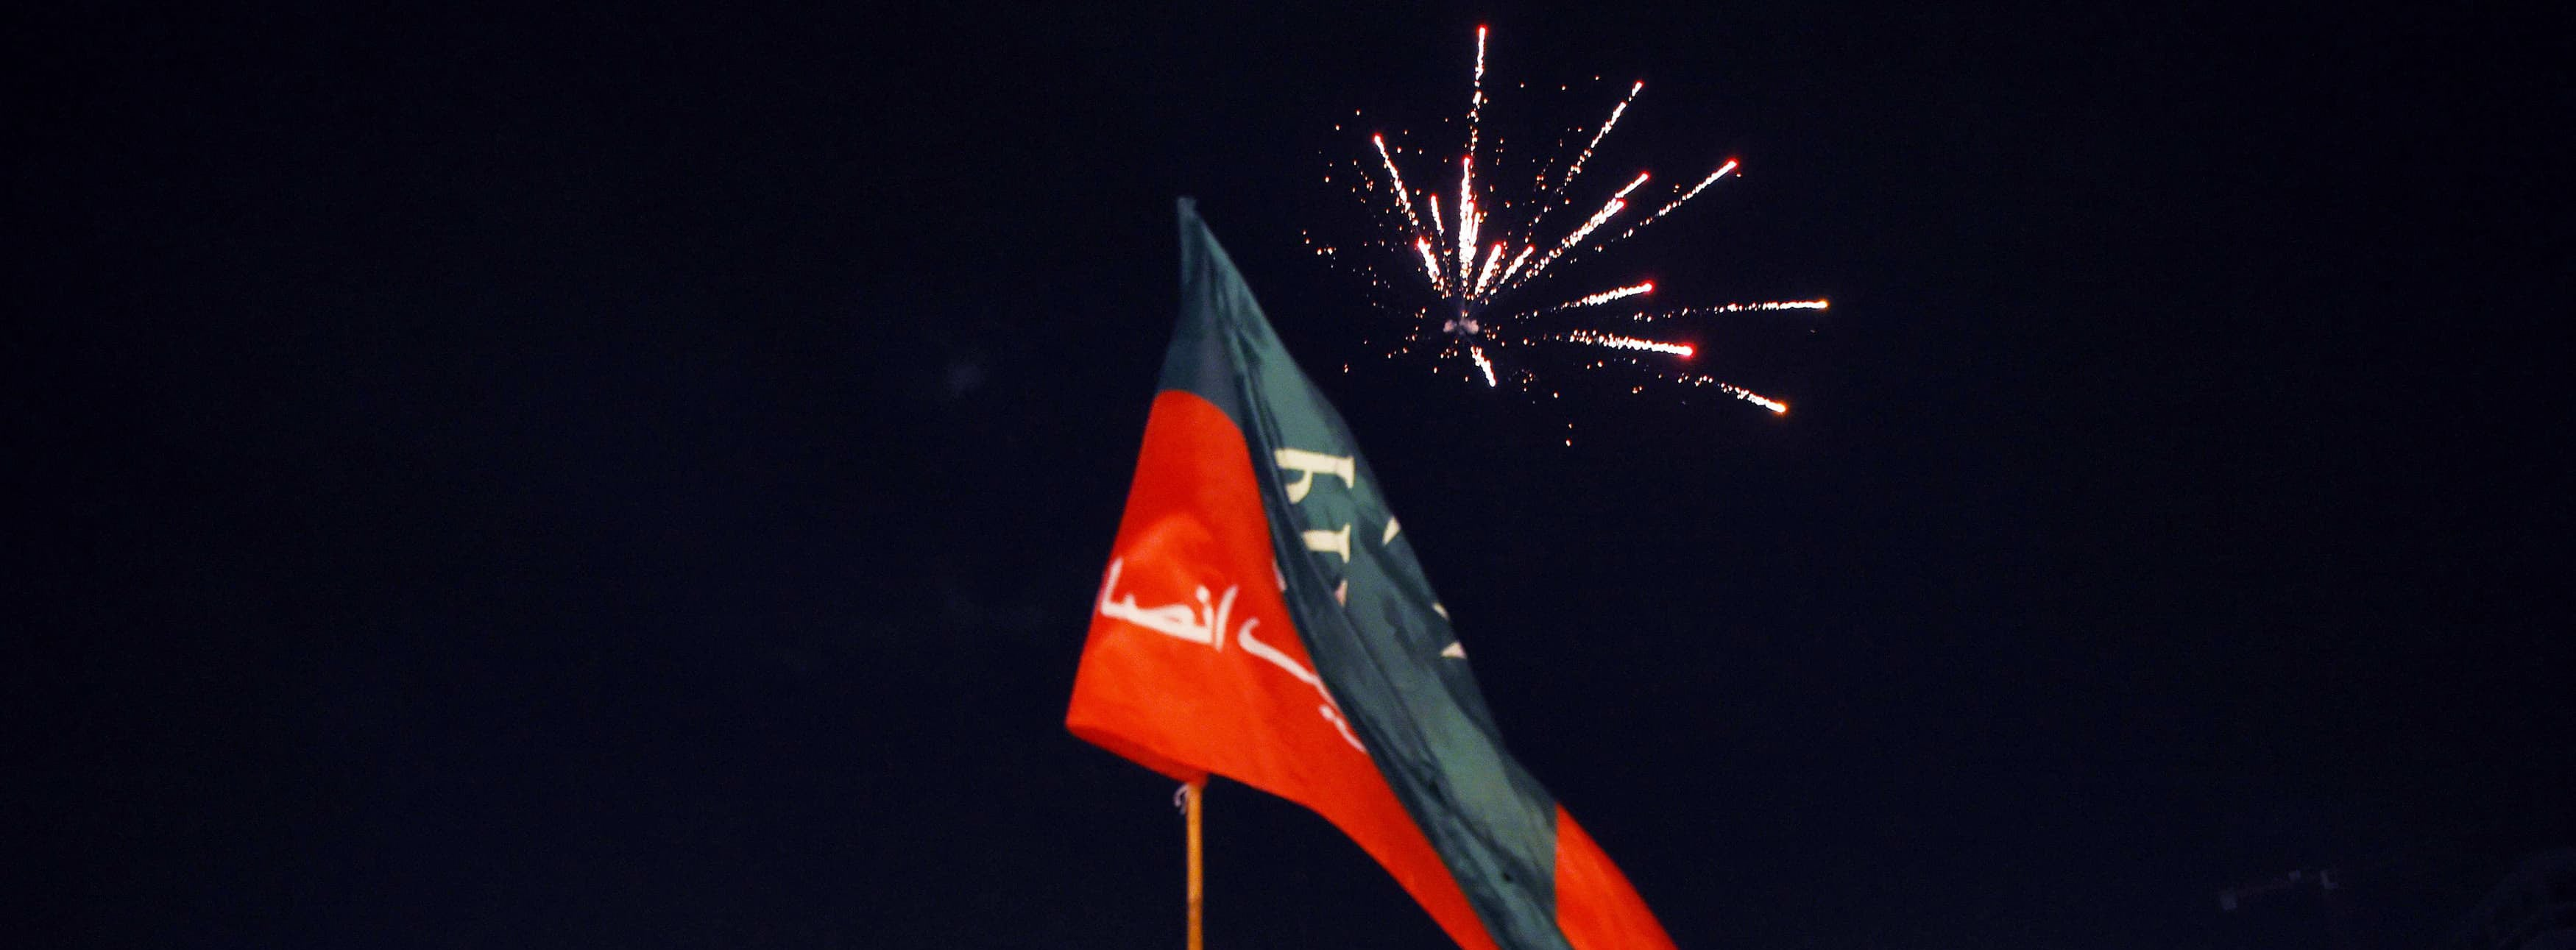 "Supporters of Pakistan's cricketer-turned politician Imran Khan, head of the Pakistan Tehreek-e-Insaf (Movement for Justice) party, cheer as fireworks go off as they celebrate in Lahore early July 26, 2018,  as voting closed in general elections. One of the main candidates in Pakistan's election, Shahbaz Sharif, rejected the results of the poll as counting was still underway, alleging ""blatant"" rigging. ""It's such a blatant rigging that everyone has started crying. Today what they have done has pushed Pakistan back 30 years... We reject this result,"" Sharif, who leads the incumbent Pakistan Mu"